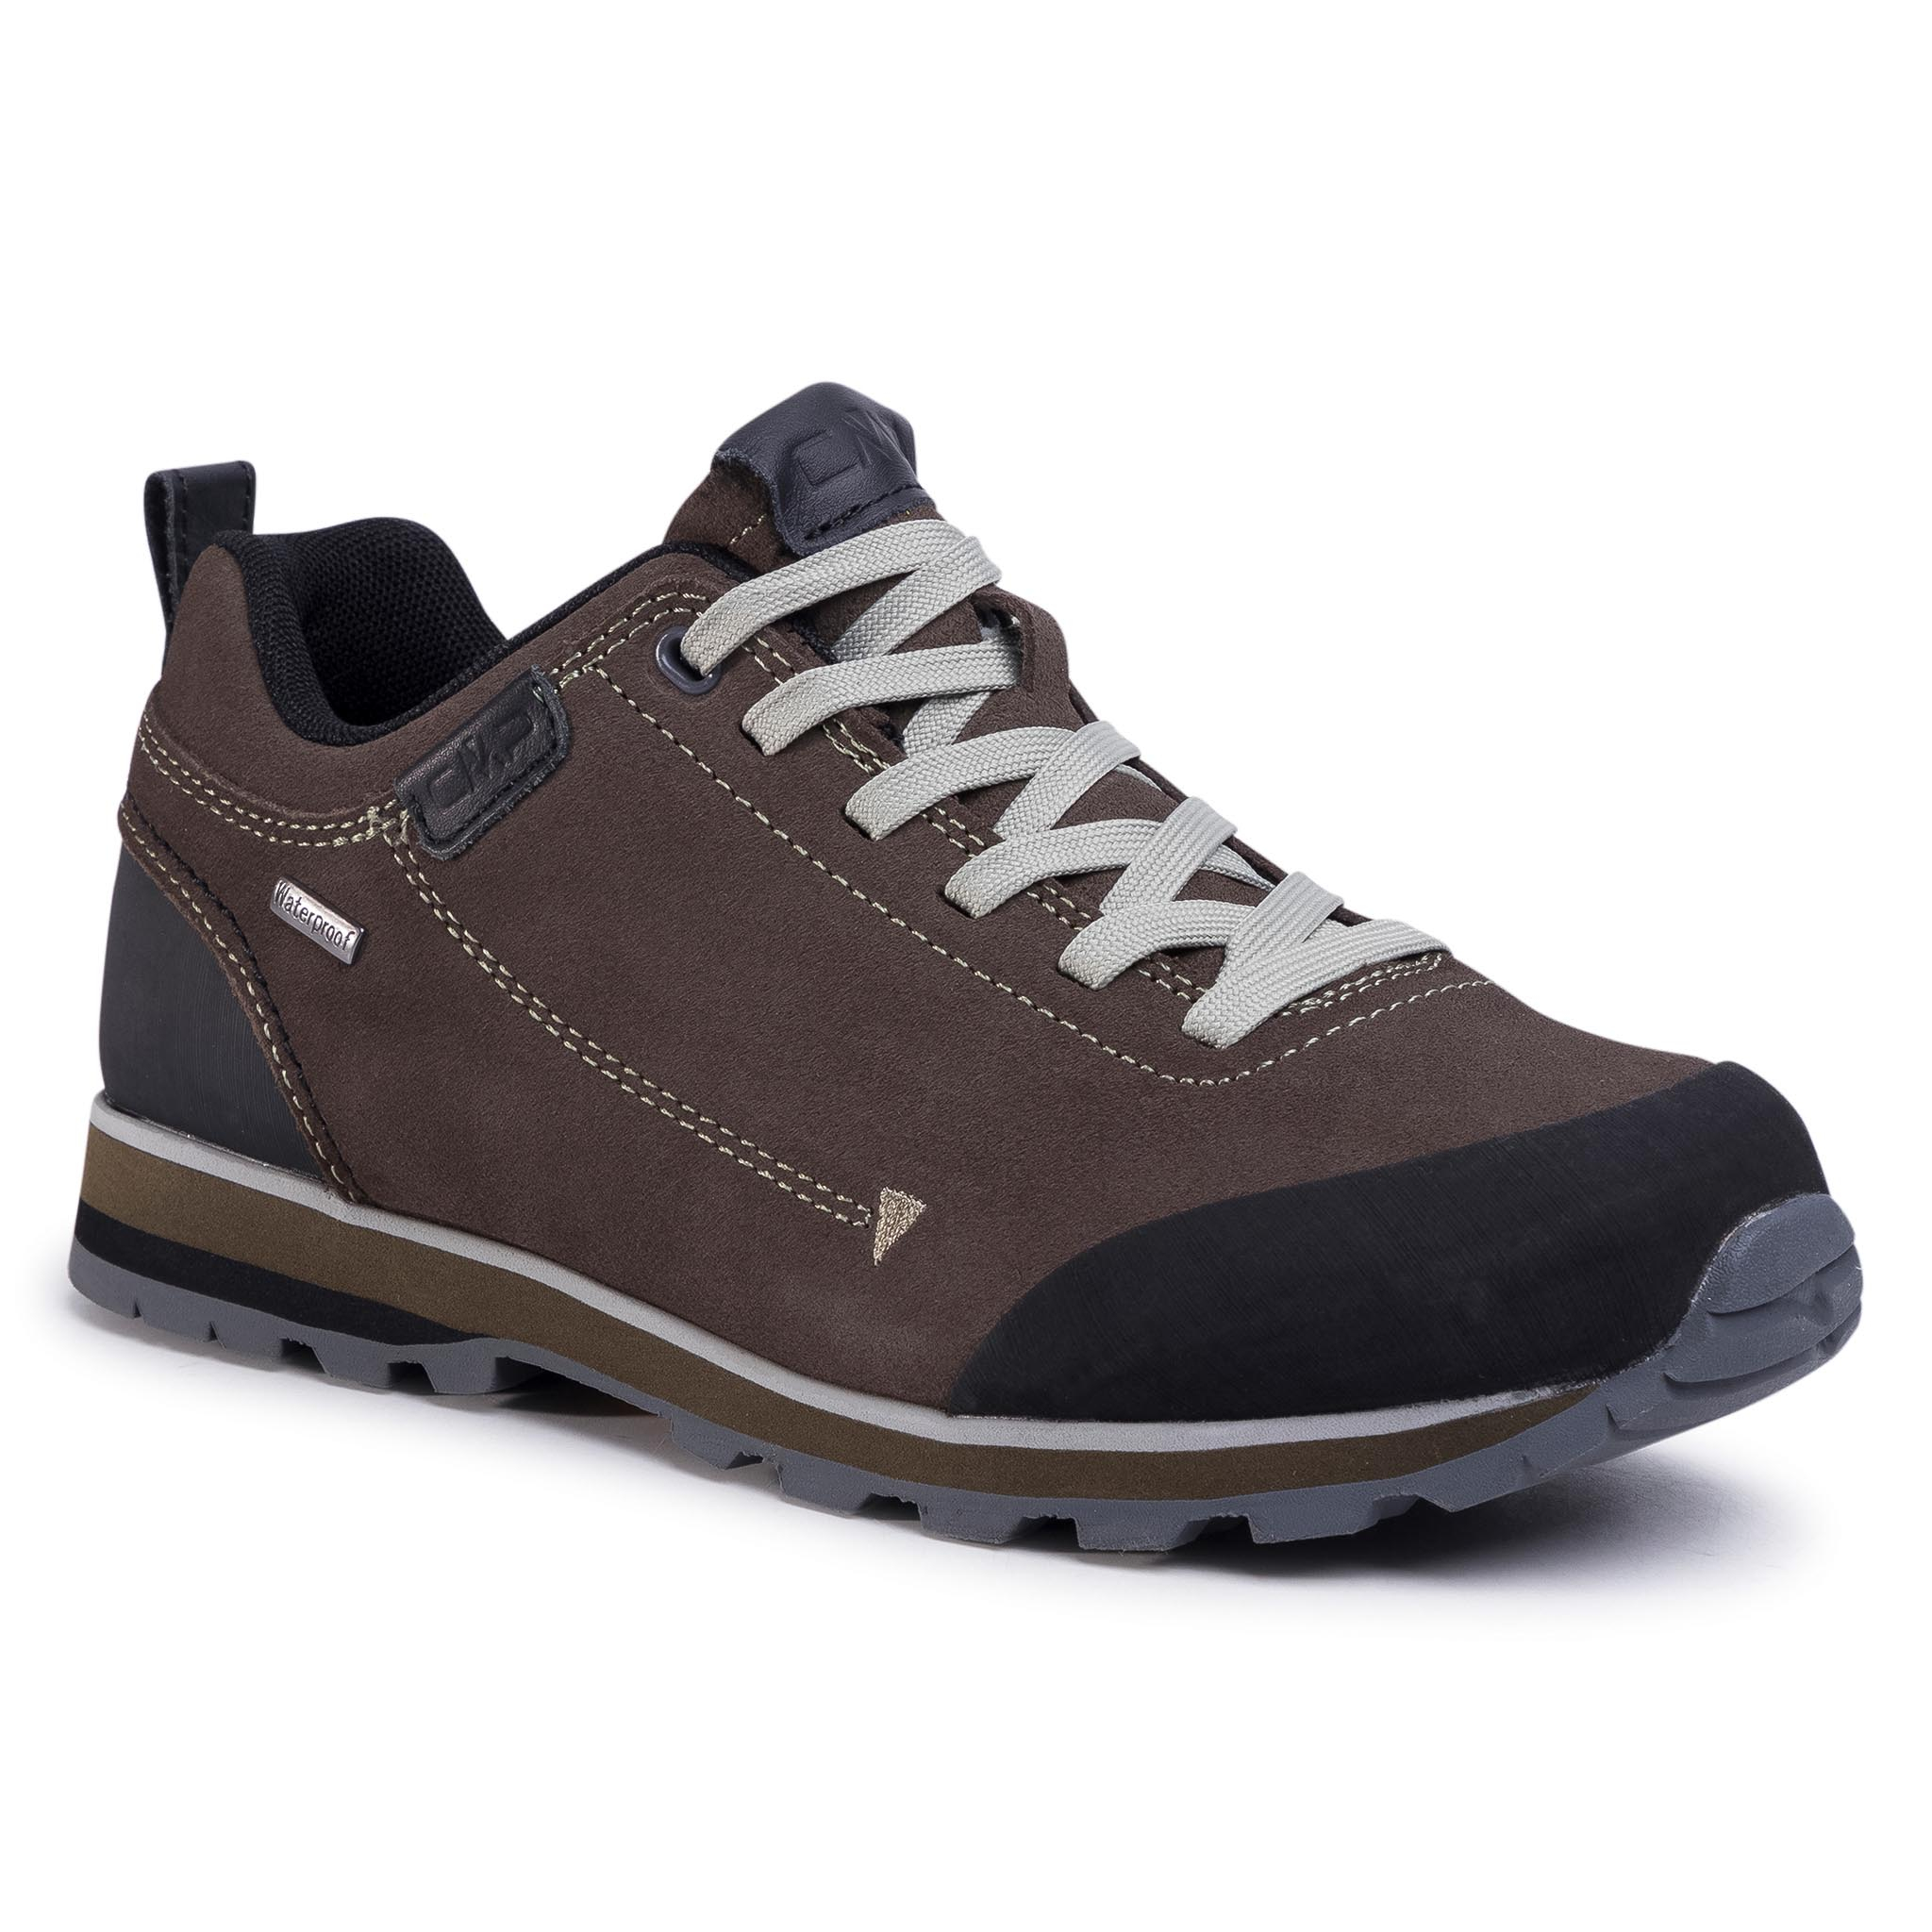 Trekkings Cmp - Elettra Low Hiking Shoe Wp 38q4617 Wood/Arena 06pe imagine epantofi.ro 2021